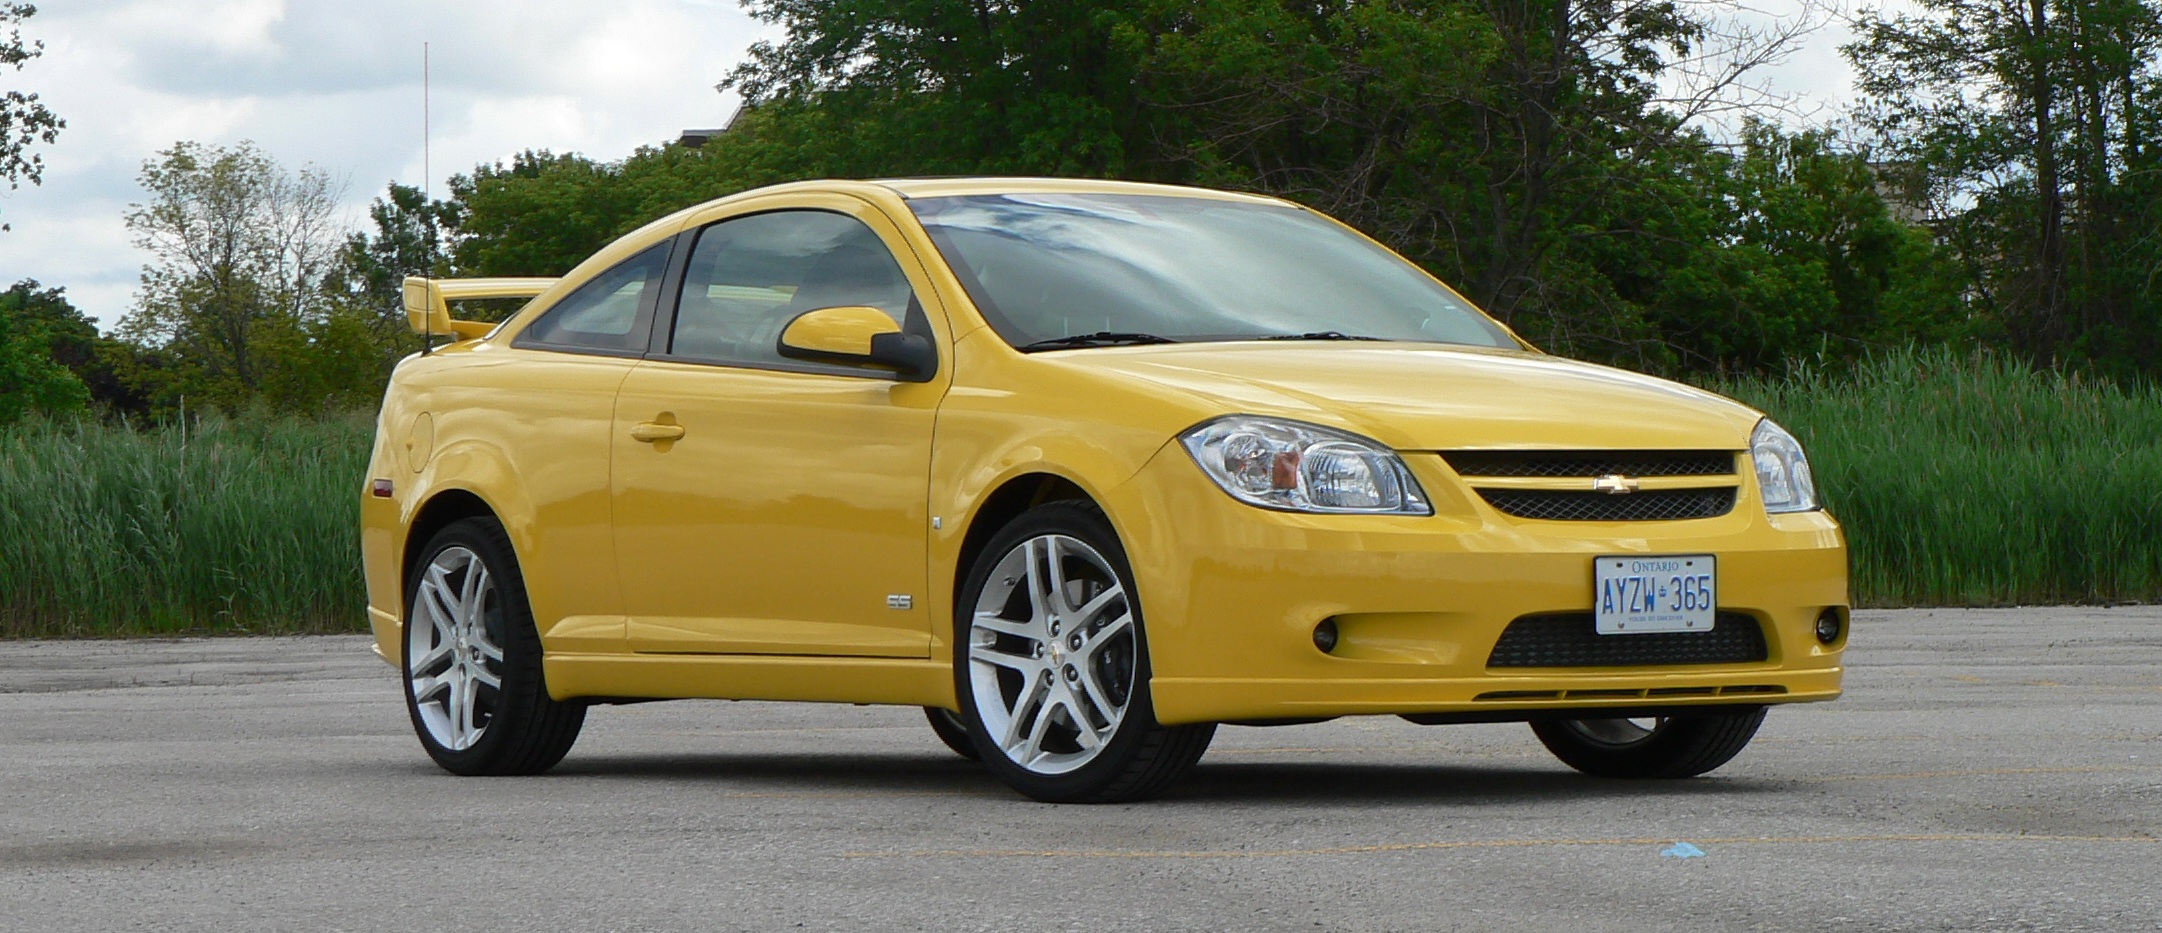 road test 2009 chevrolet cobalt ss coupe john leblanc 39 s. Cars Review. Best American Auto & Cars Review